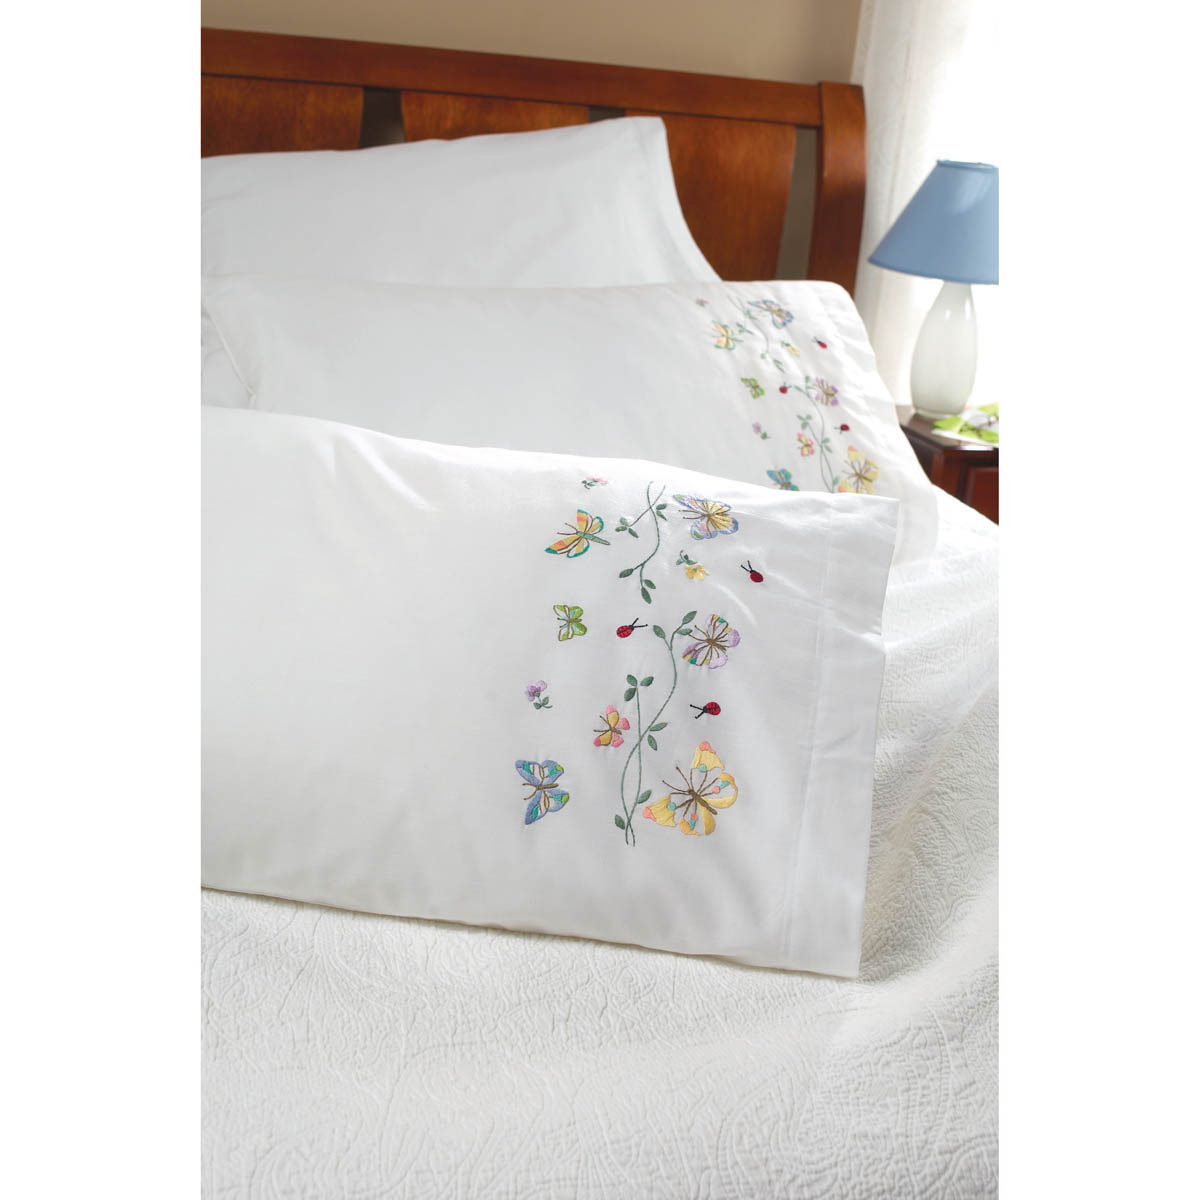 Bucilla ® Stamped Cross Stitch & Embroidery - Pillowcase Pairs - Butterflies in Flight